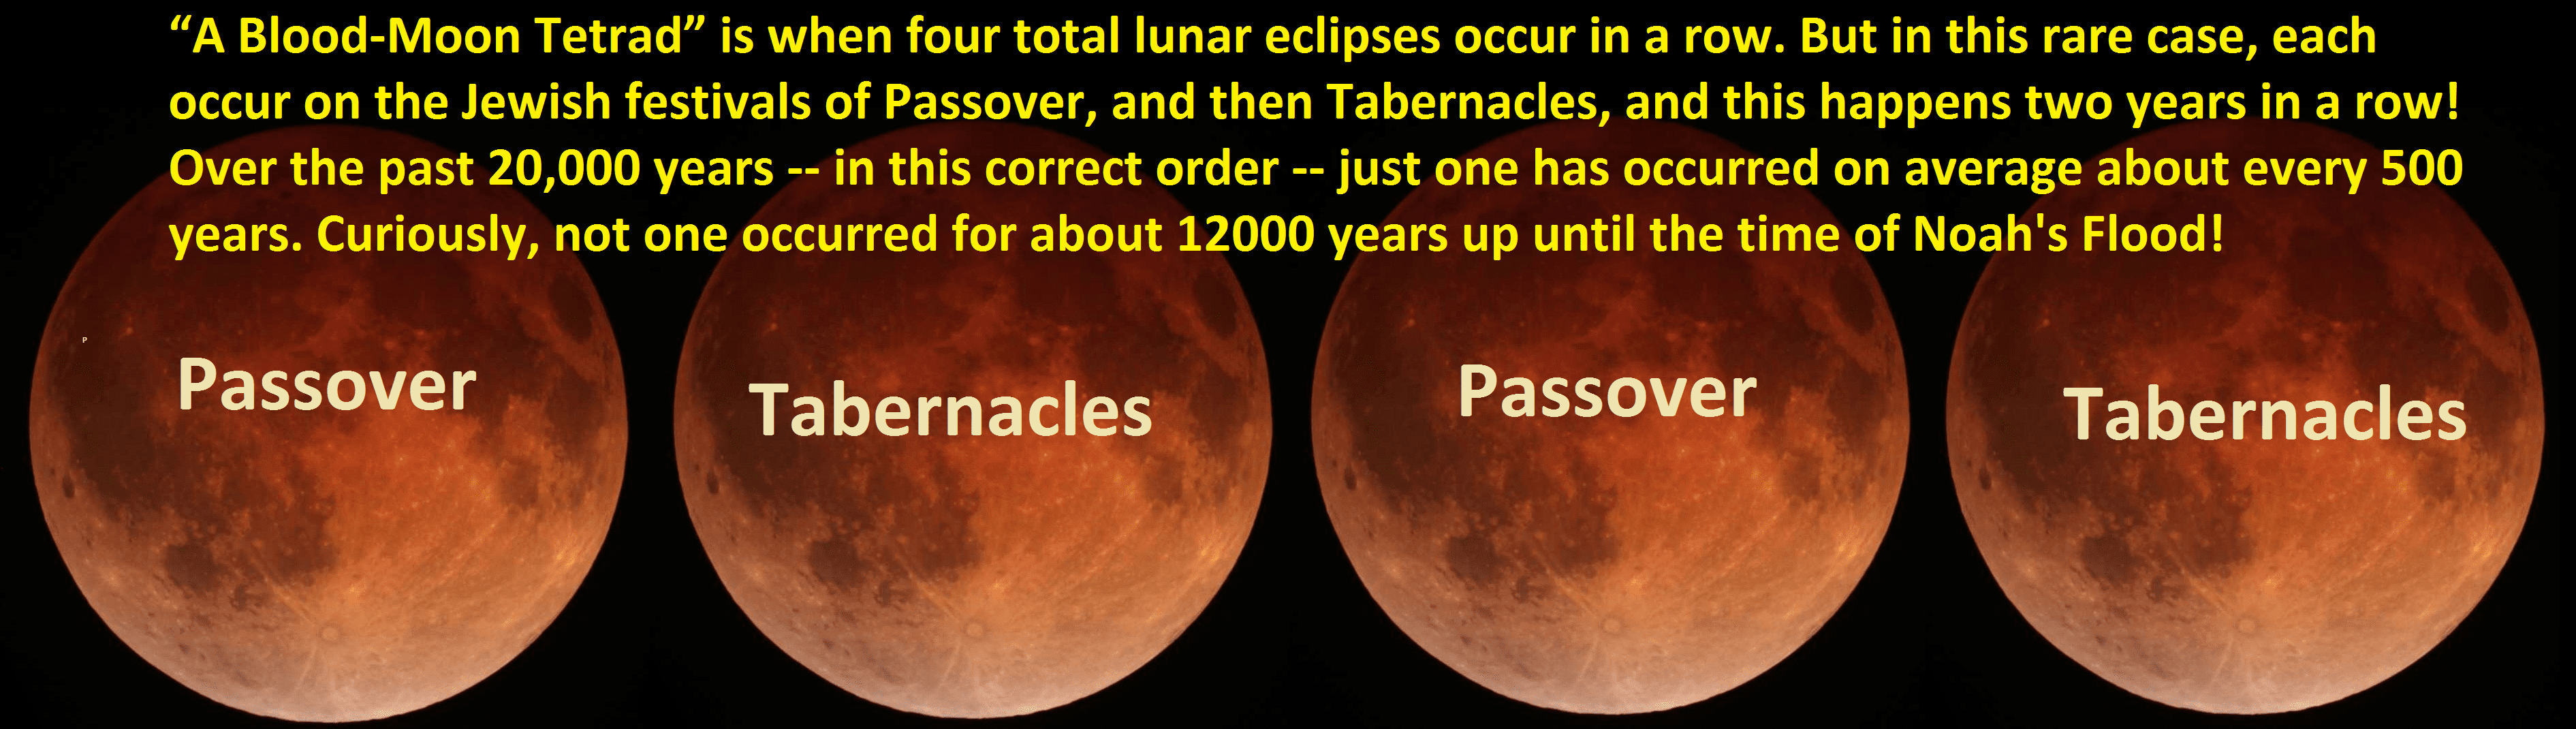 Blood-Moon Tetrads over the ages that occur on Passover and Tabernacles